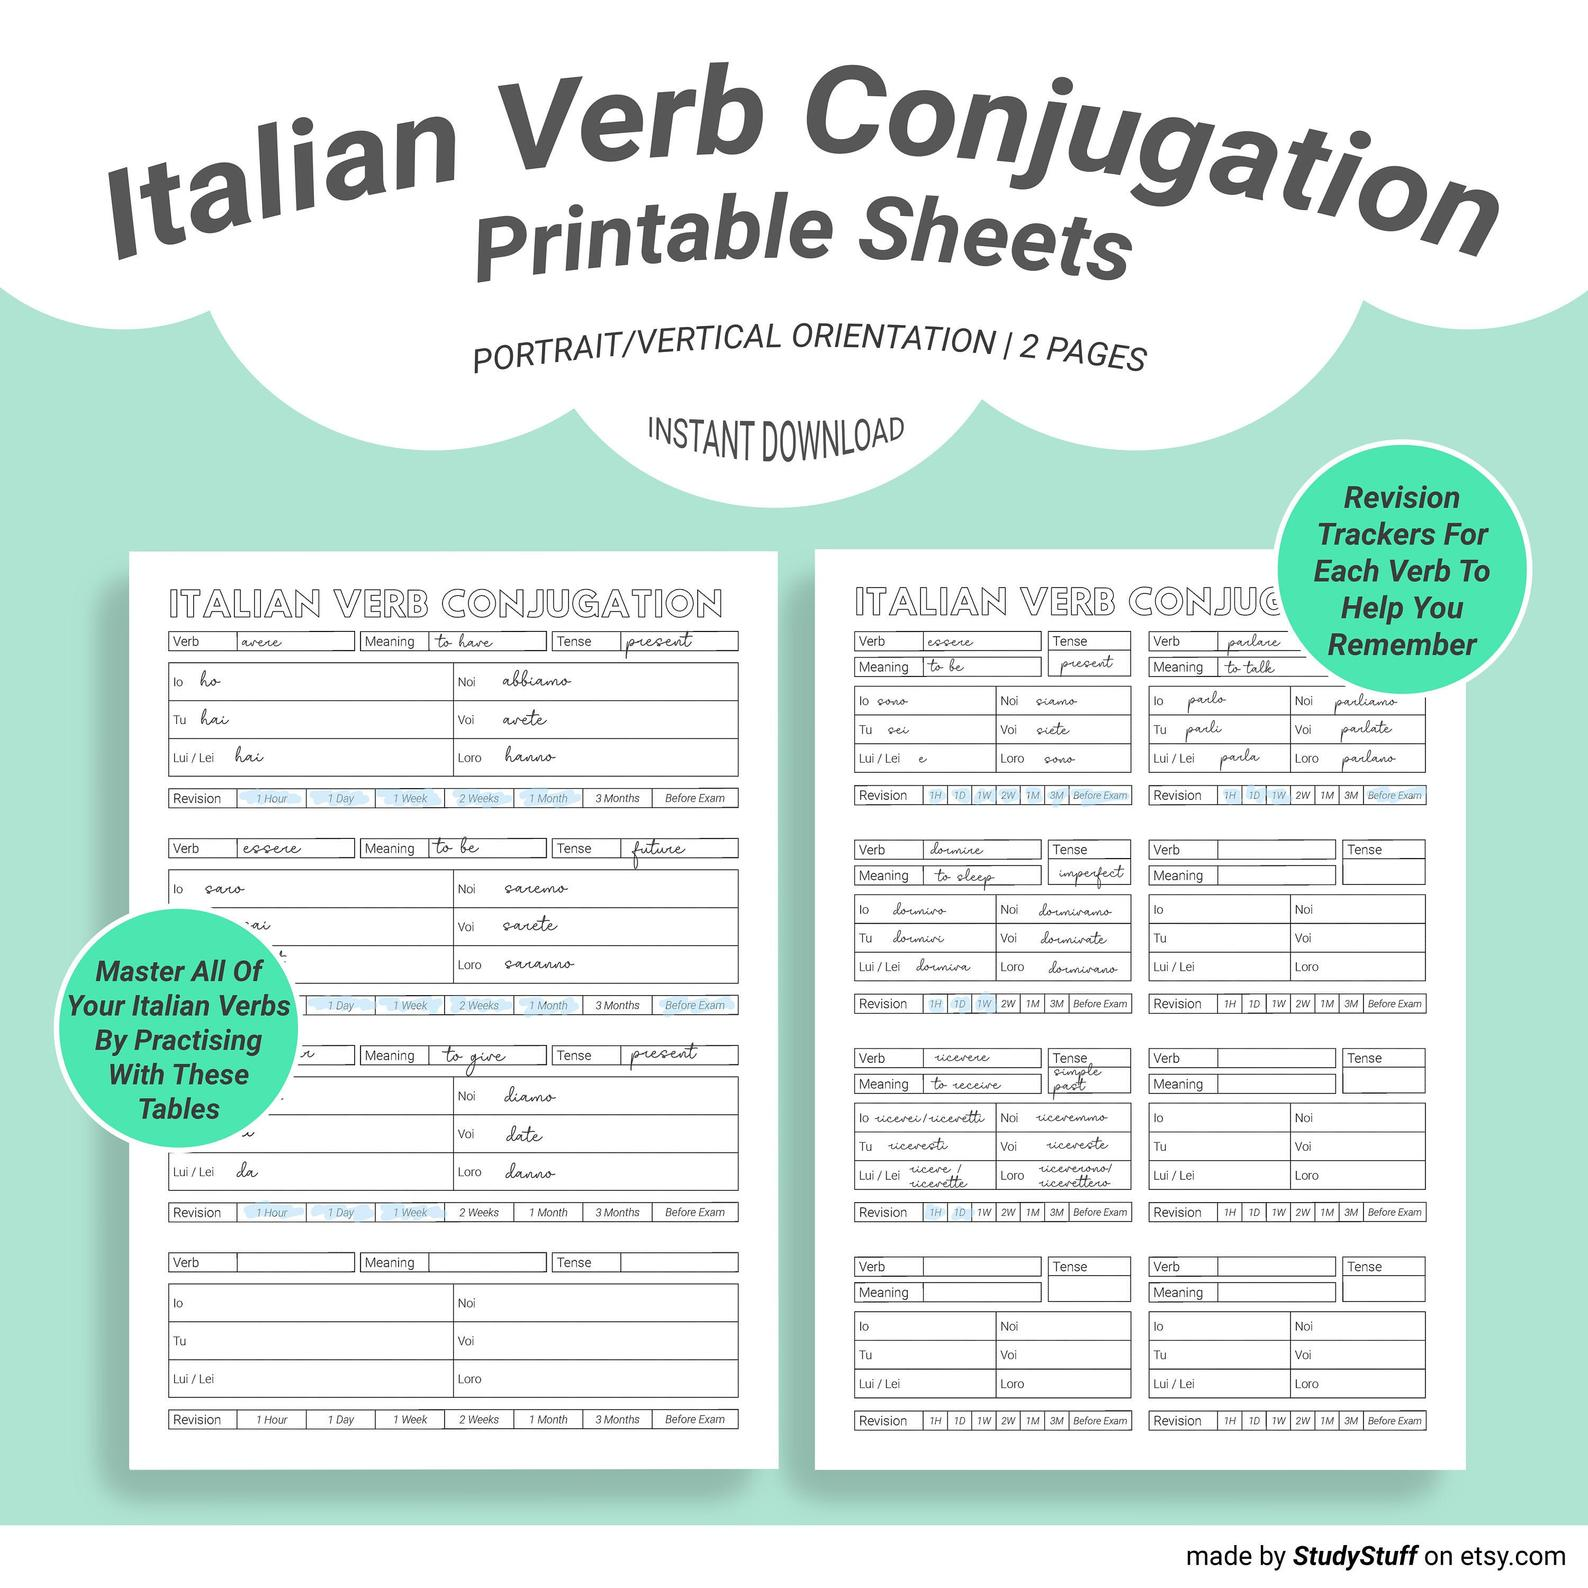 Use This Conjugation Worksheet To Master Your Italian